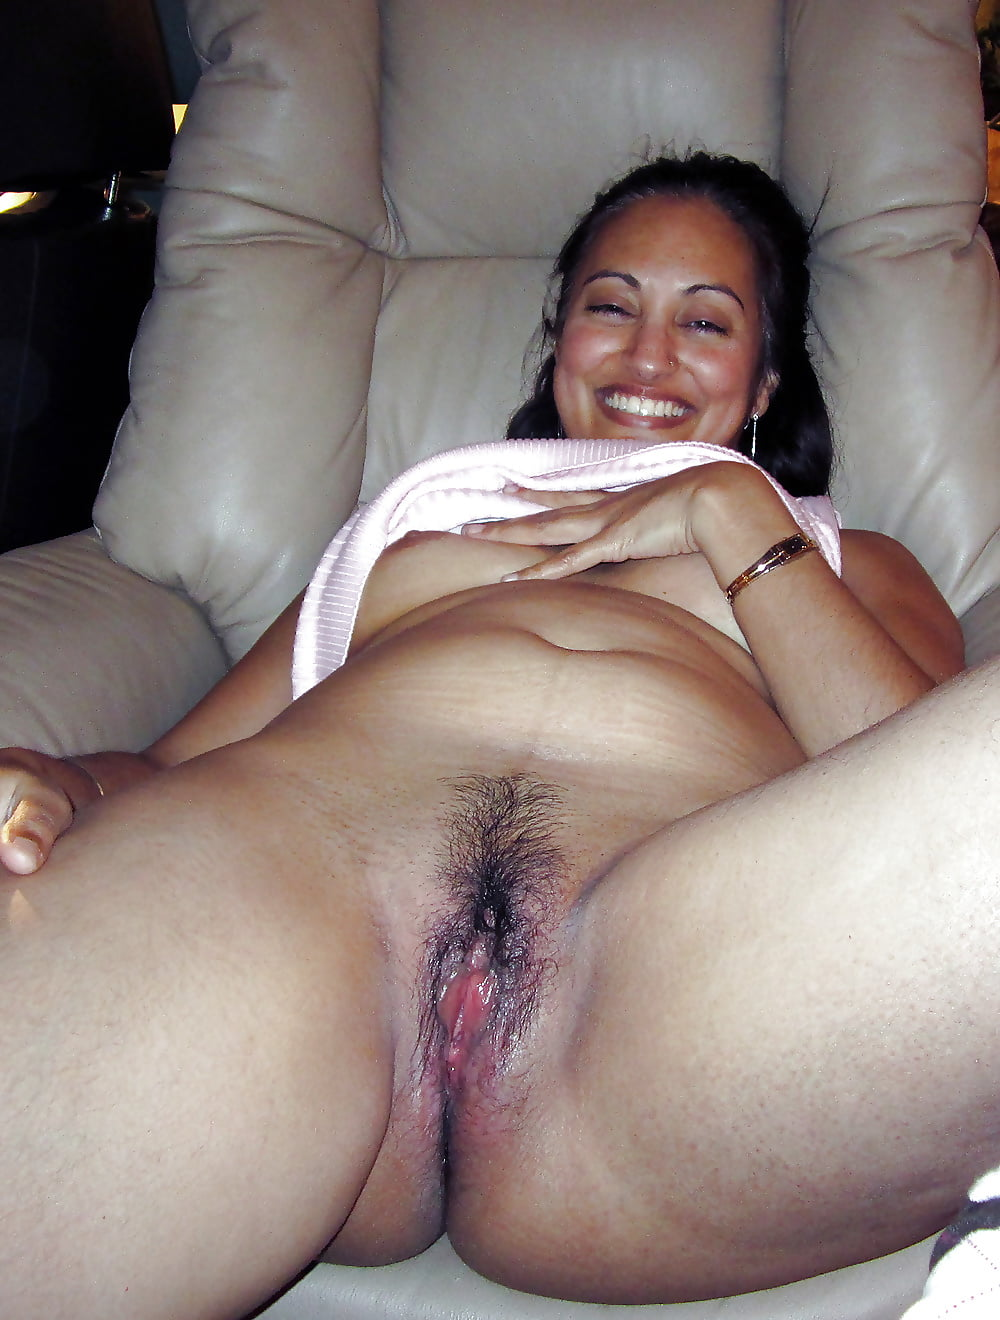 Wet pink desi pussies exposed in real private leaked photos